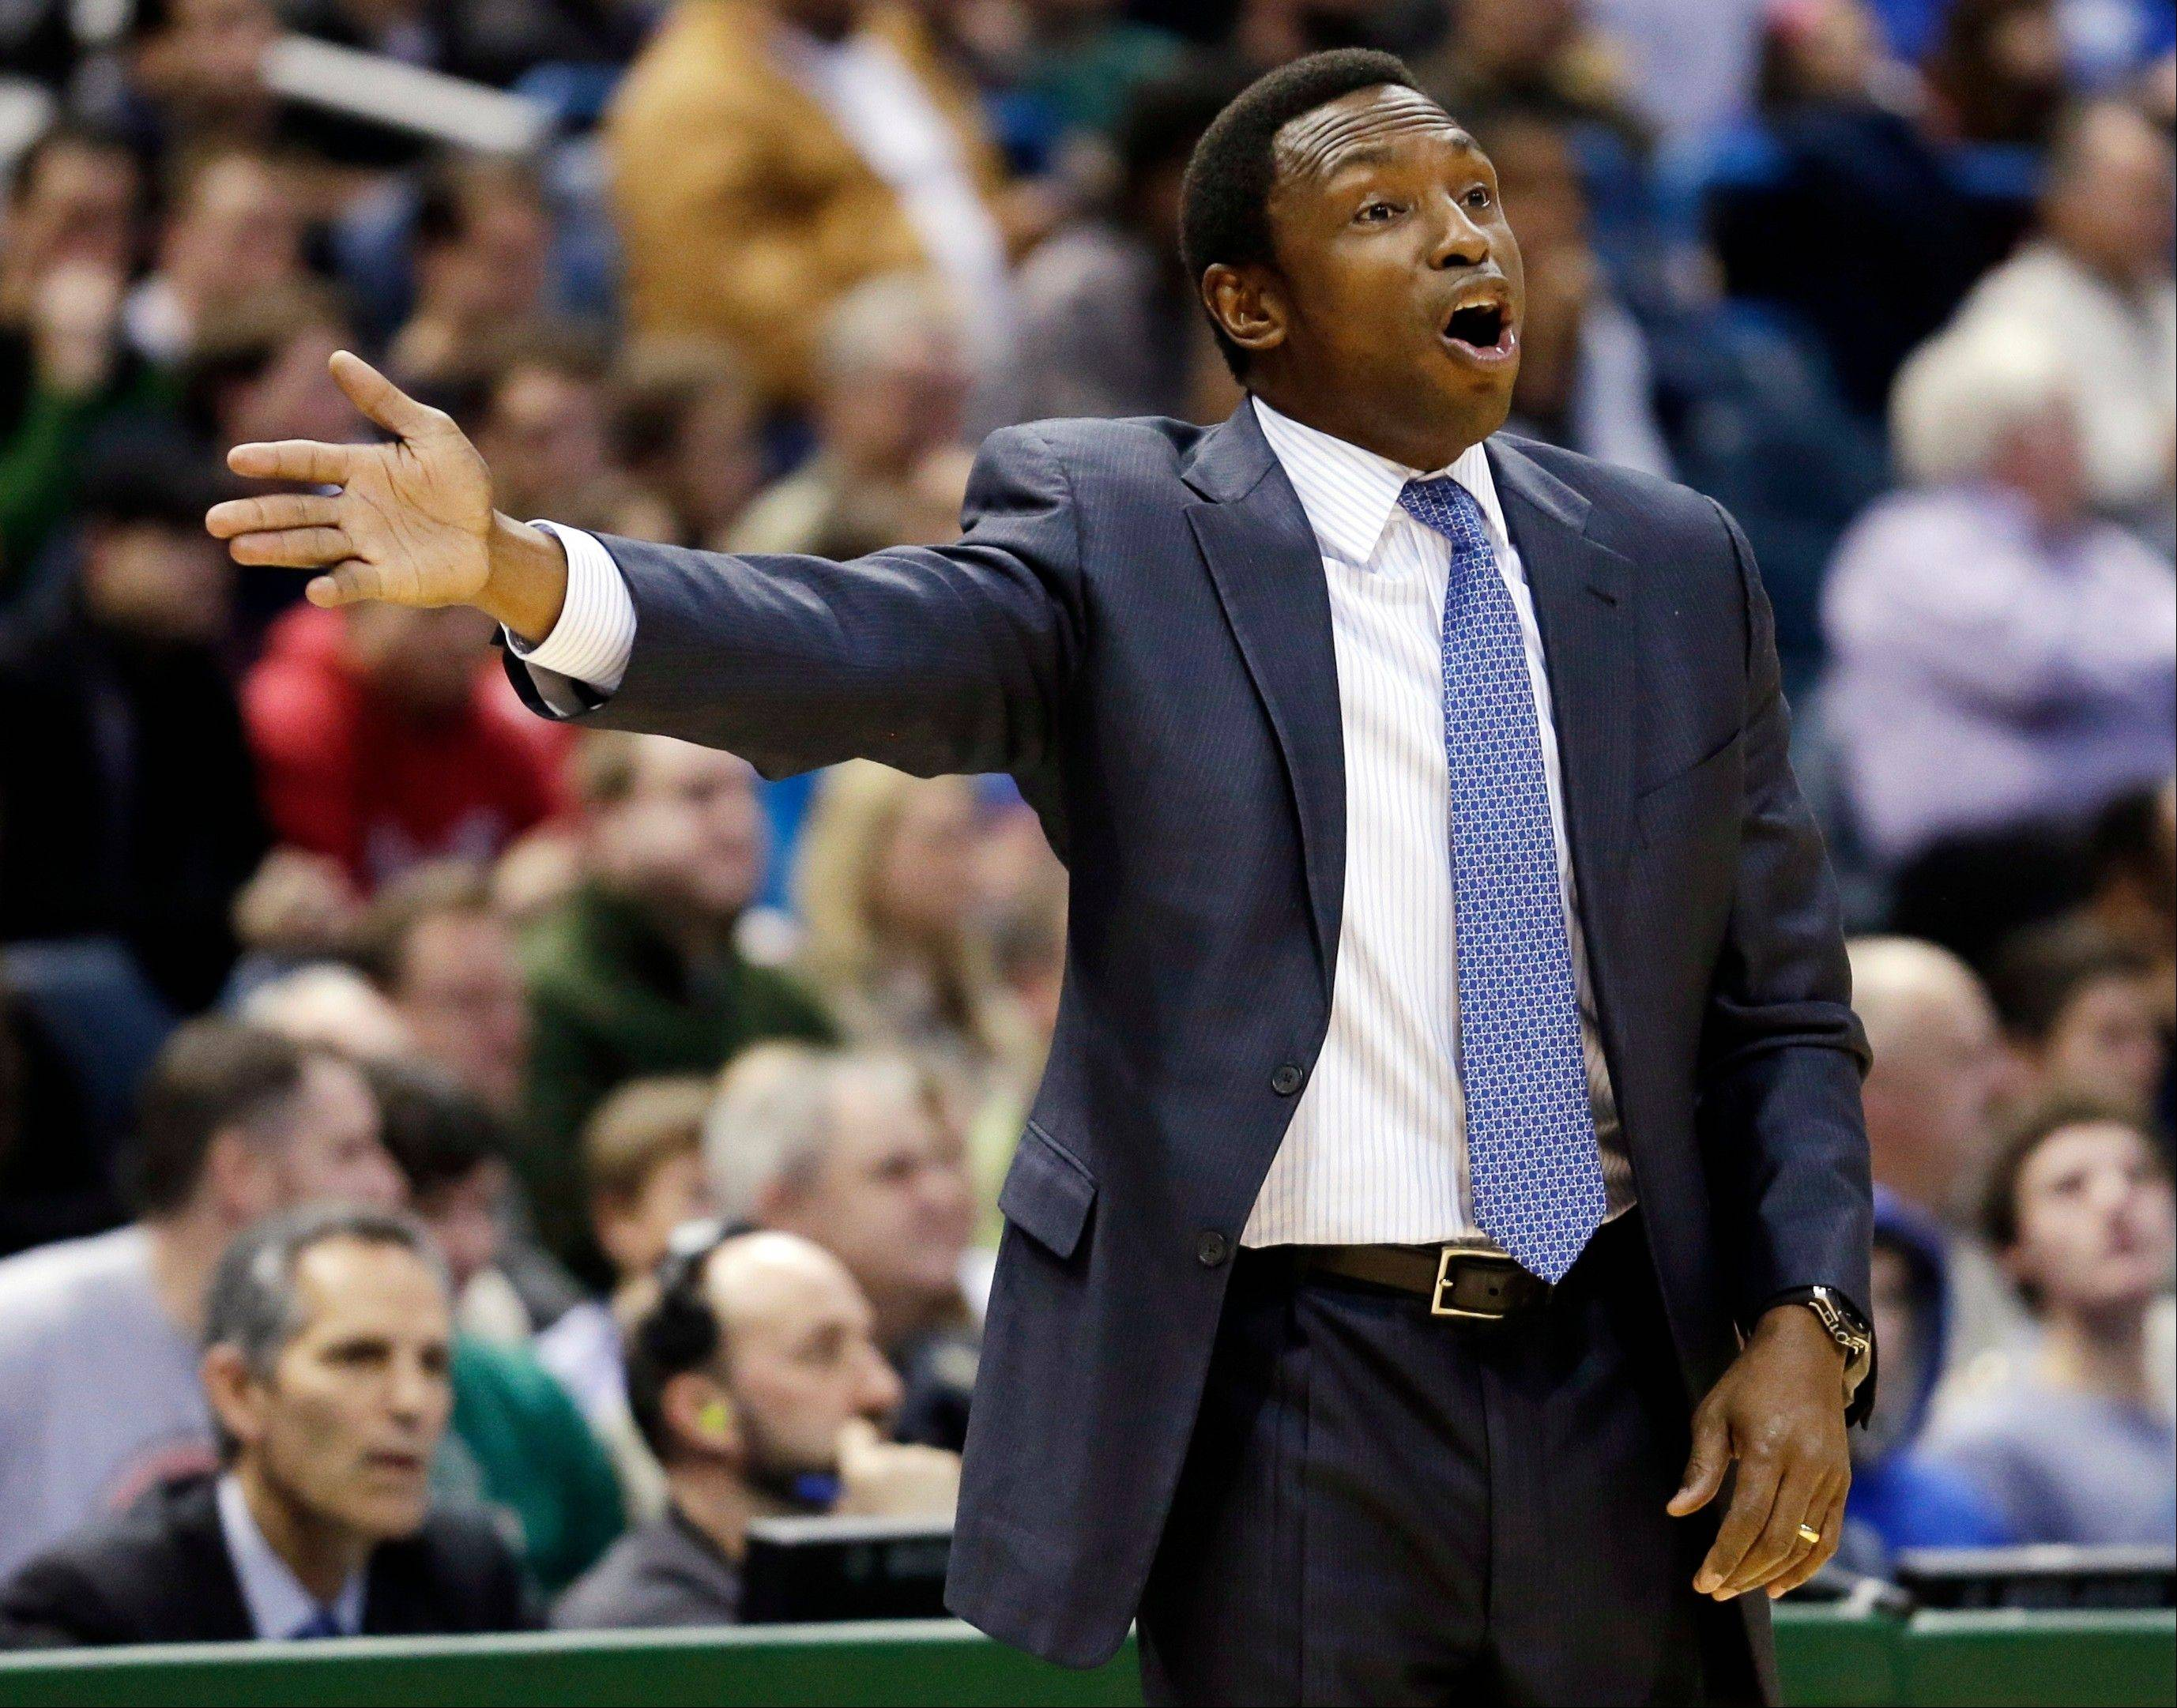 Brooklyn Nets head coach Avery Johnson was fired Thursday after losing 10 of their last 13 games.